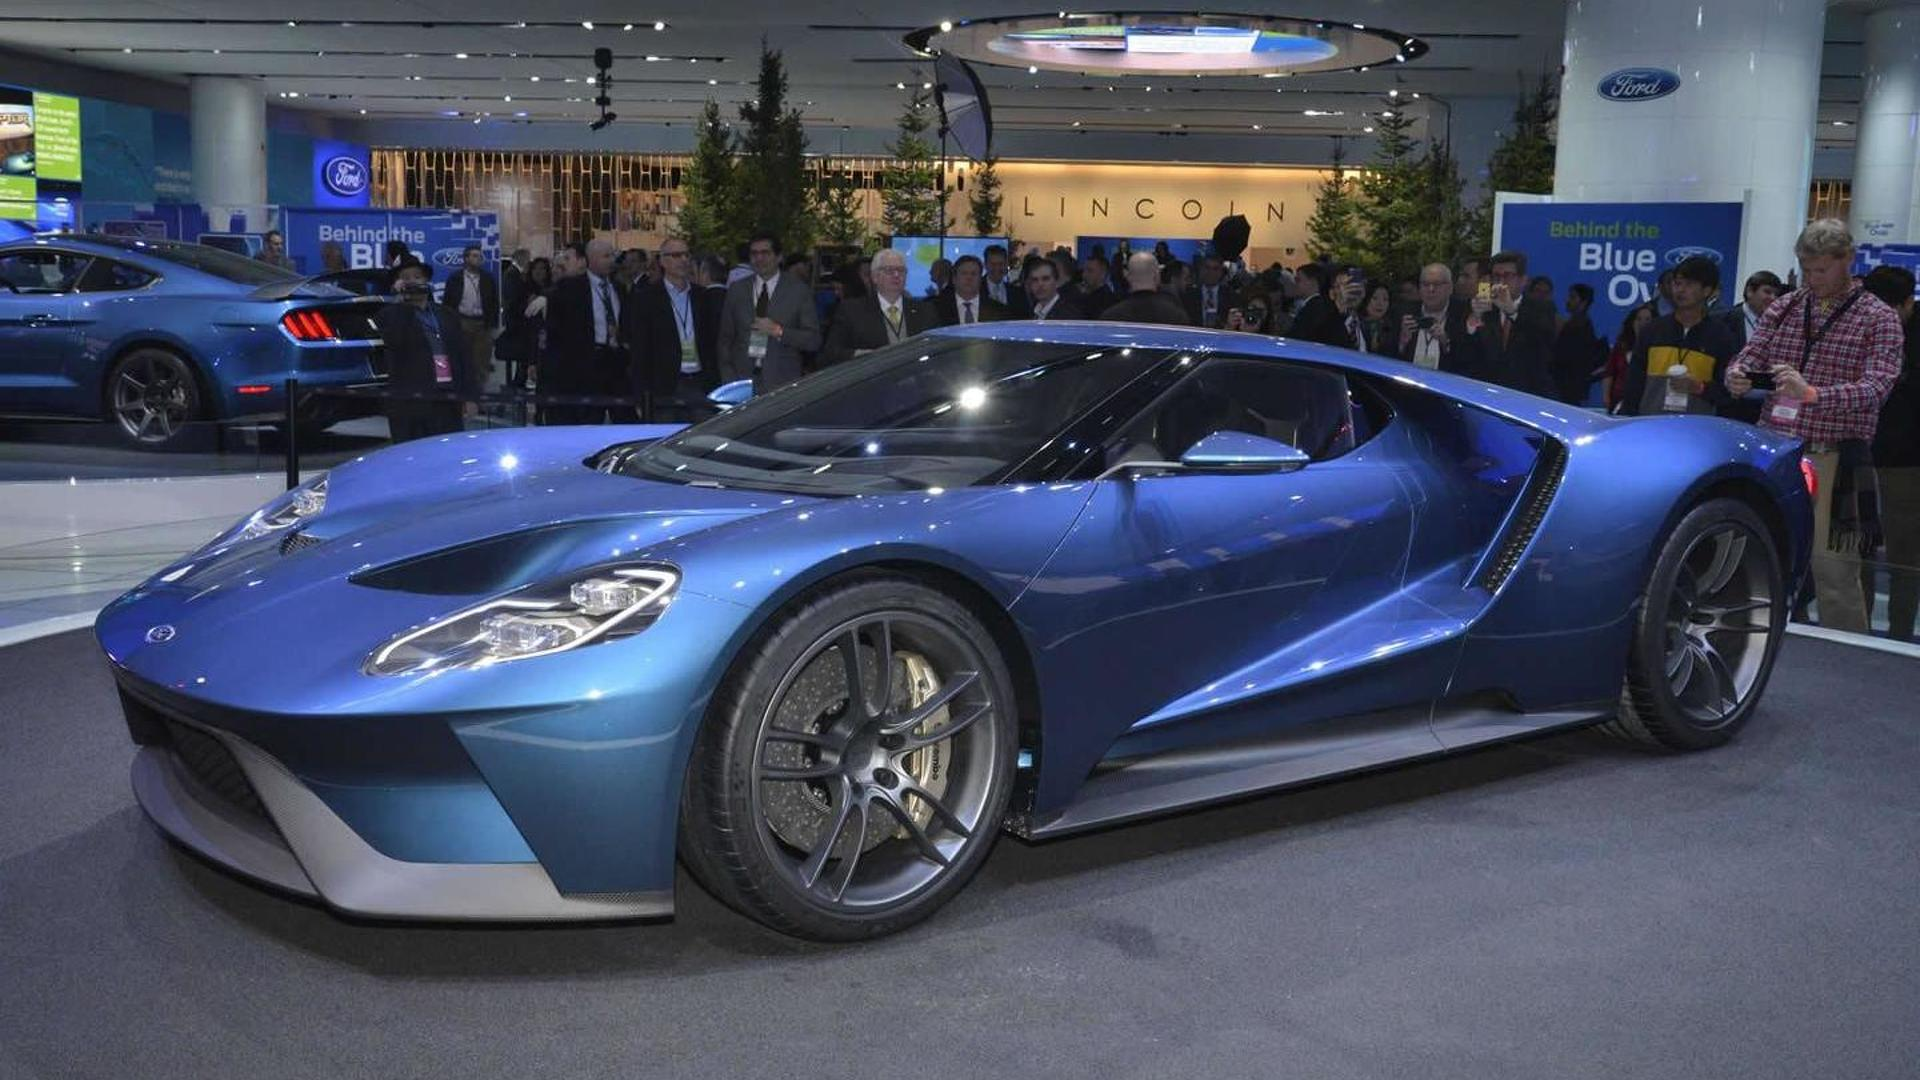 The Ford Gt Was Designed In Basement To Keep It Away From Prying Eyes 2015 Mustang Fuse Box